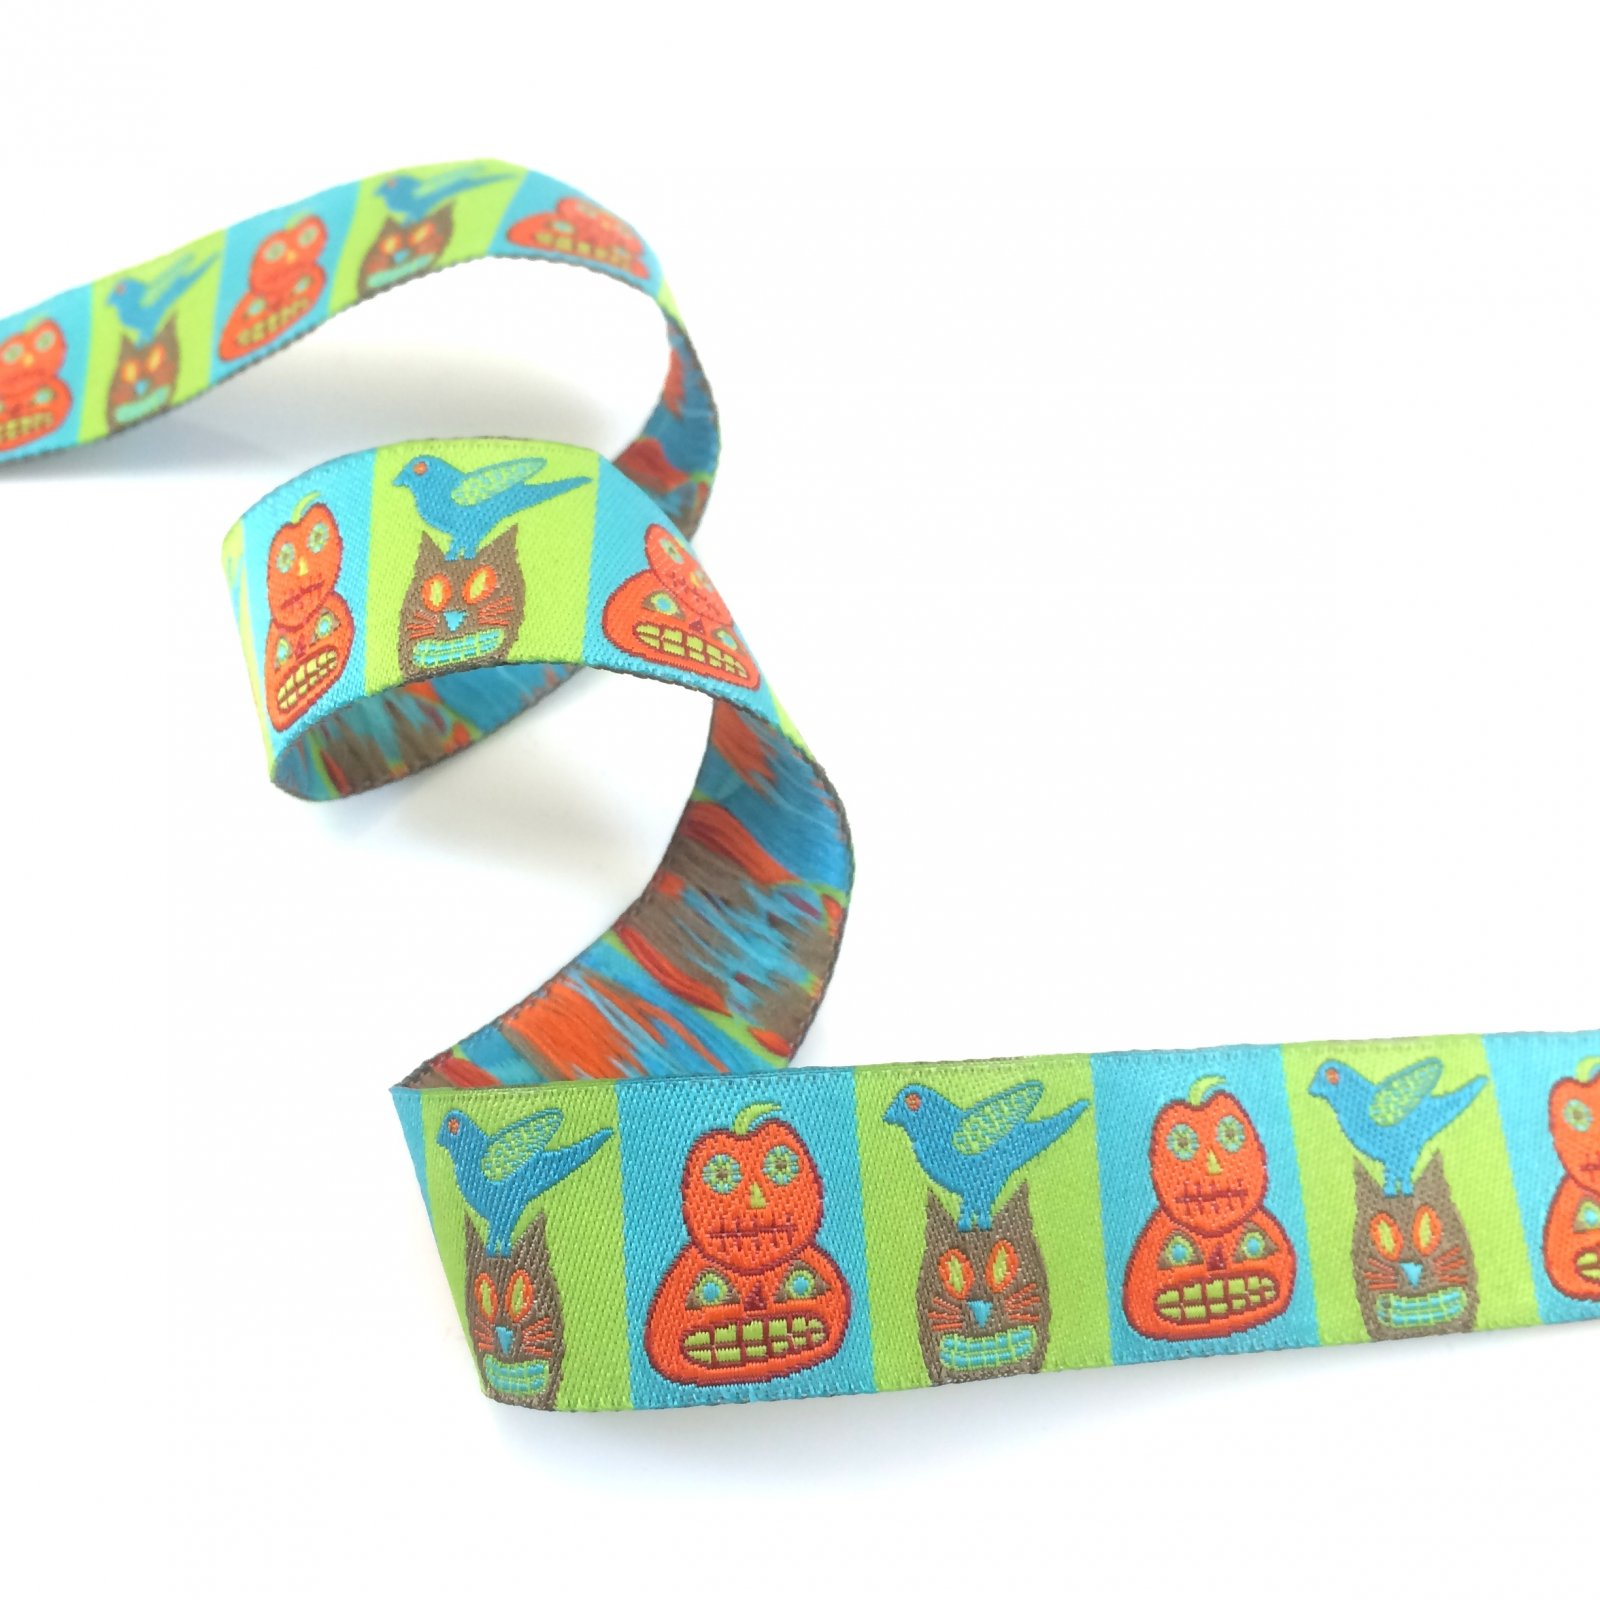 RENAISSANCE RIBBONS - HALLOWEEN - ORANGE & TURQUOISE